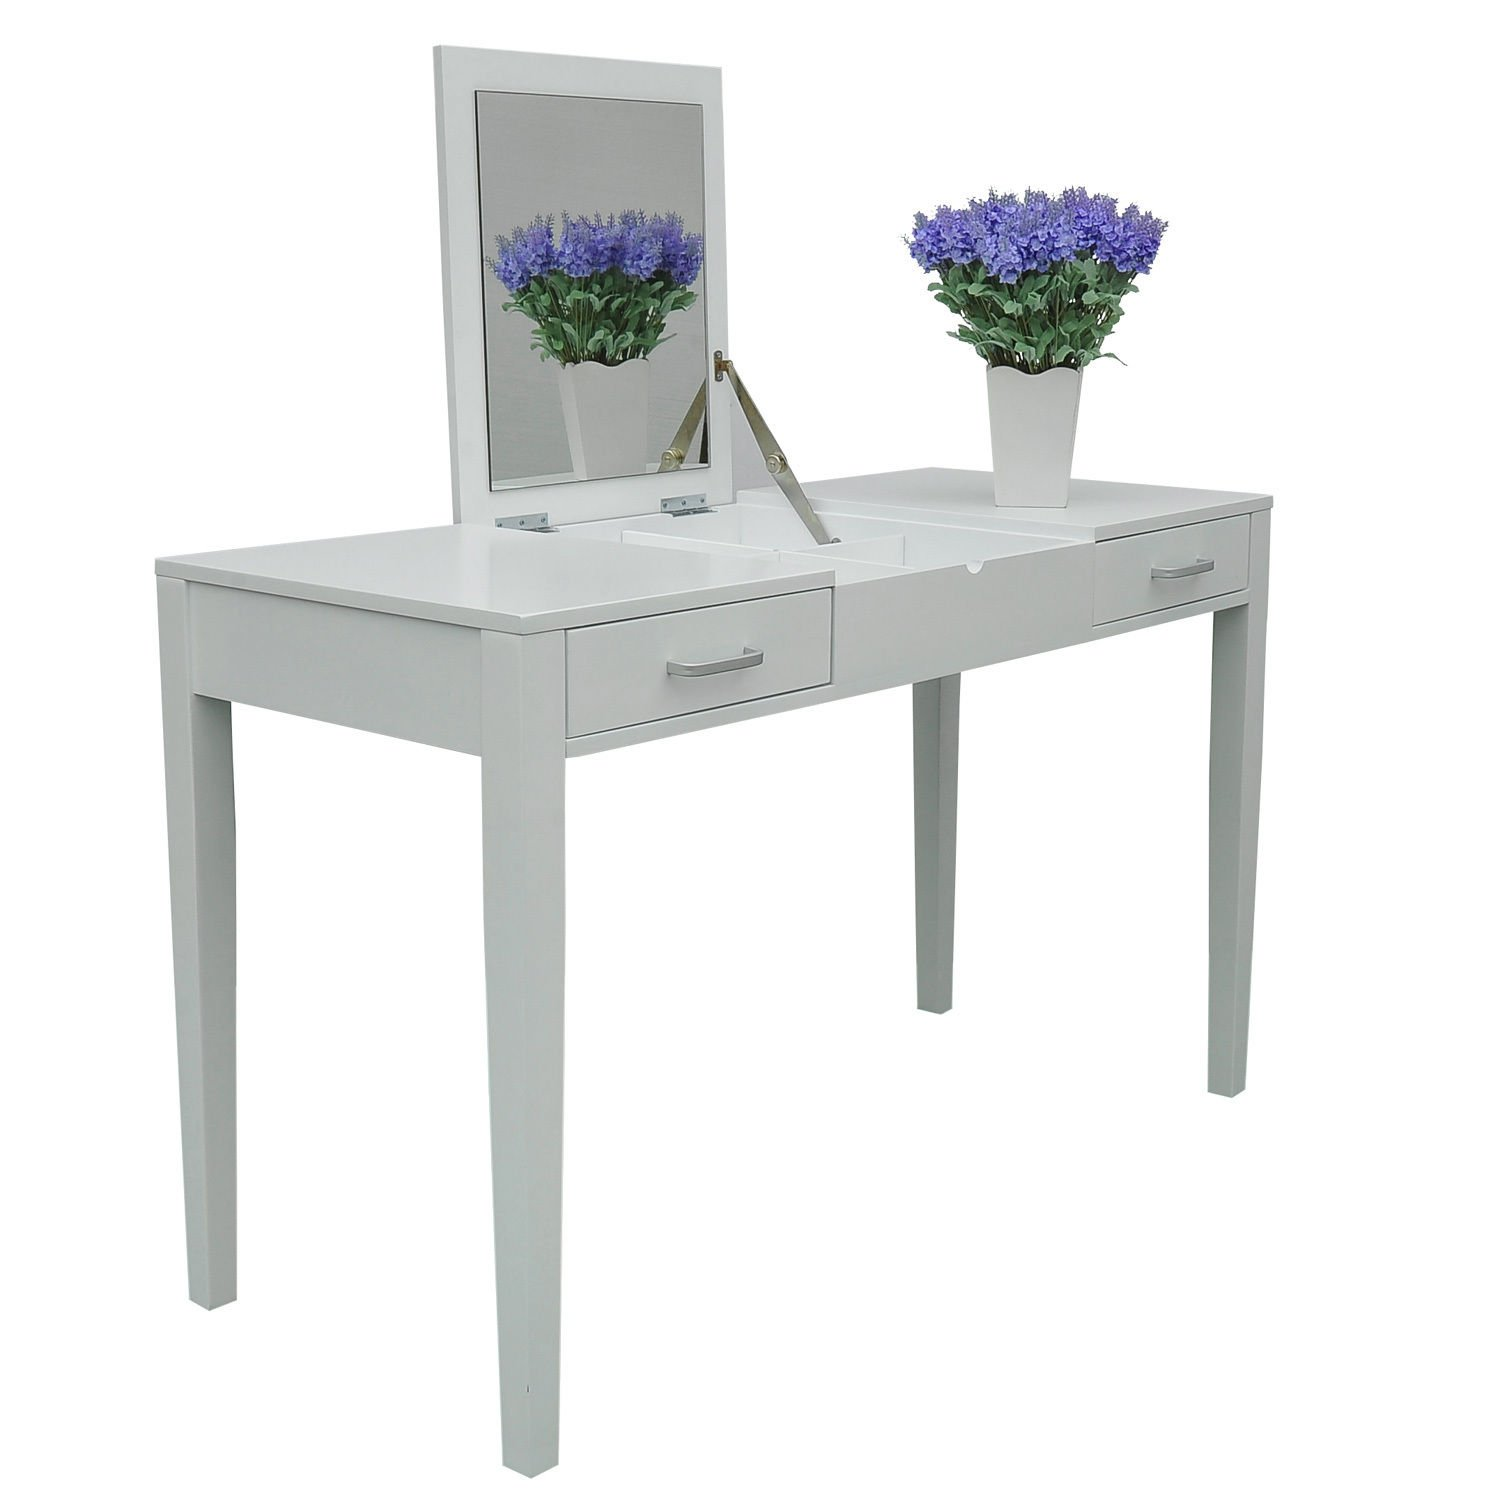 Hom Dressing Table Makeup Table Writing Table Desk with Folding